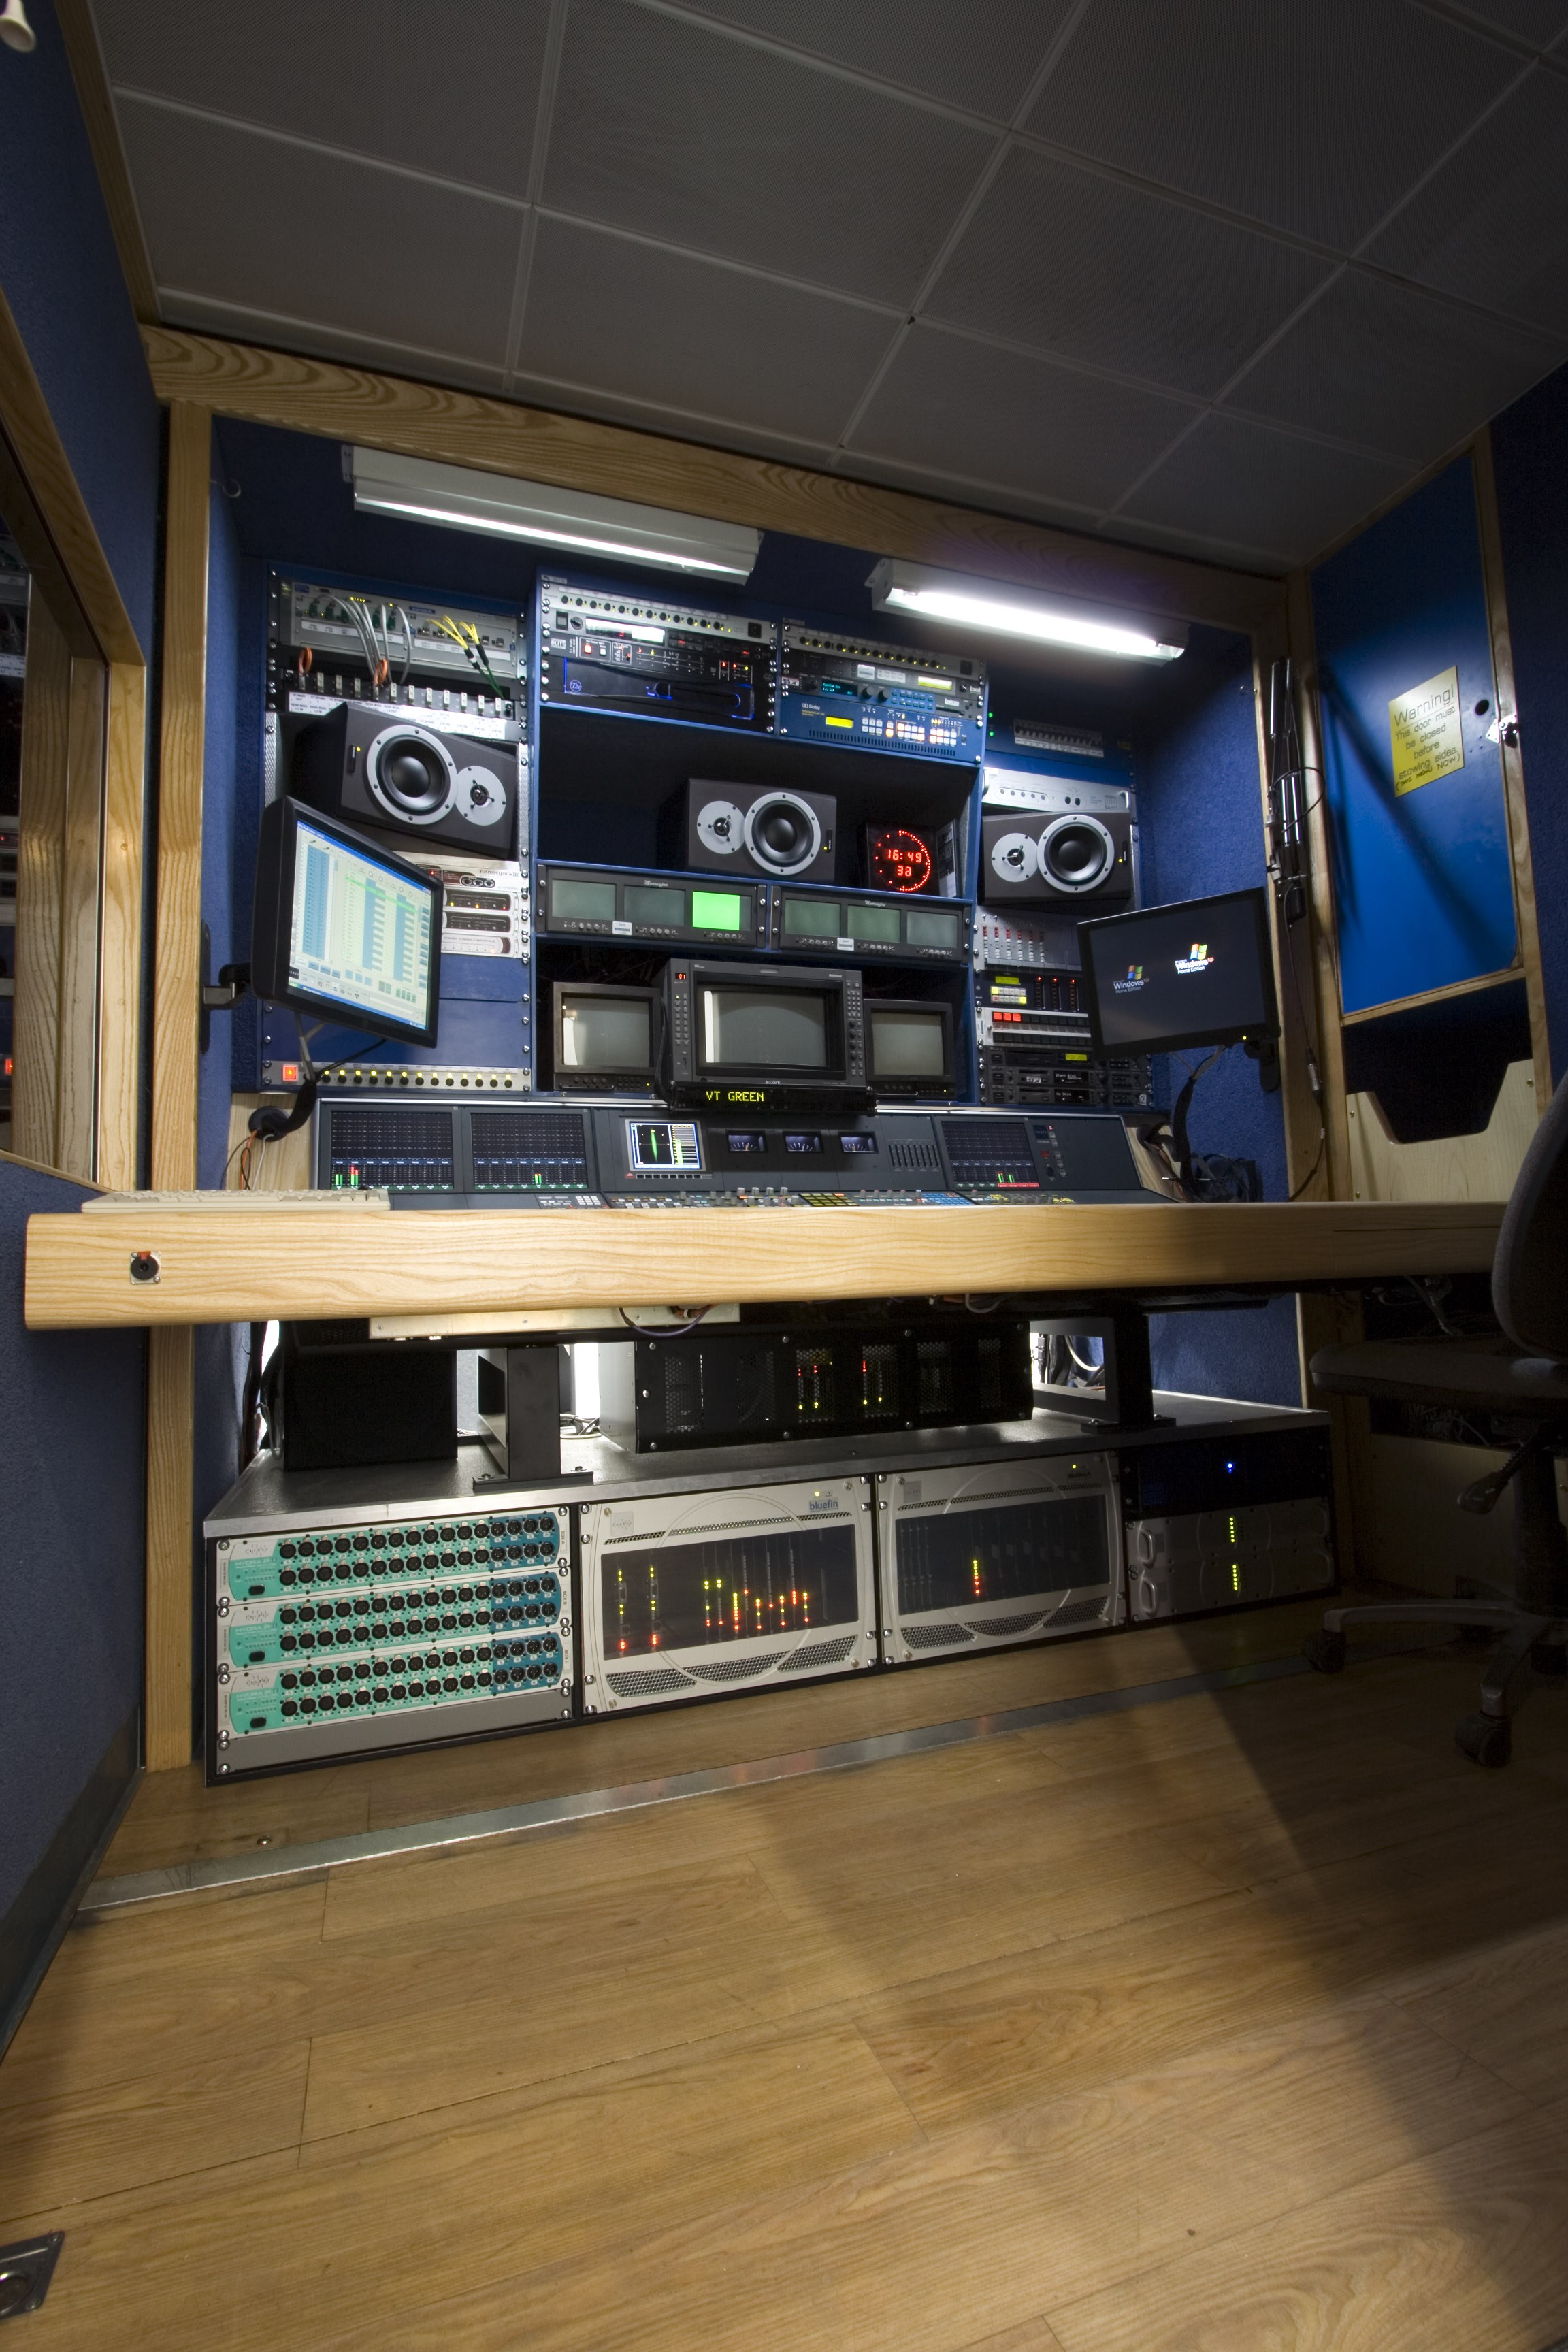 OB Truck Photos 5.jpg - Sound Control Room, OB Production Trailer, Ely, Cambridgeshire, UK, April 2008